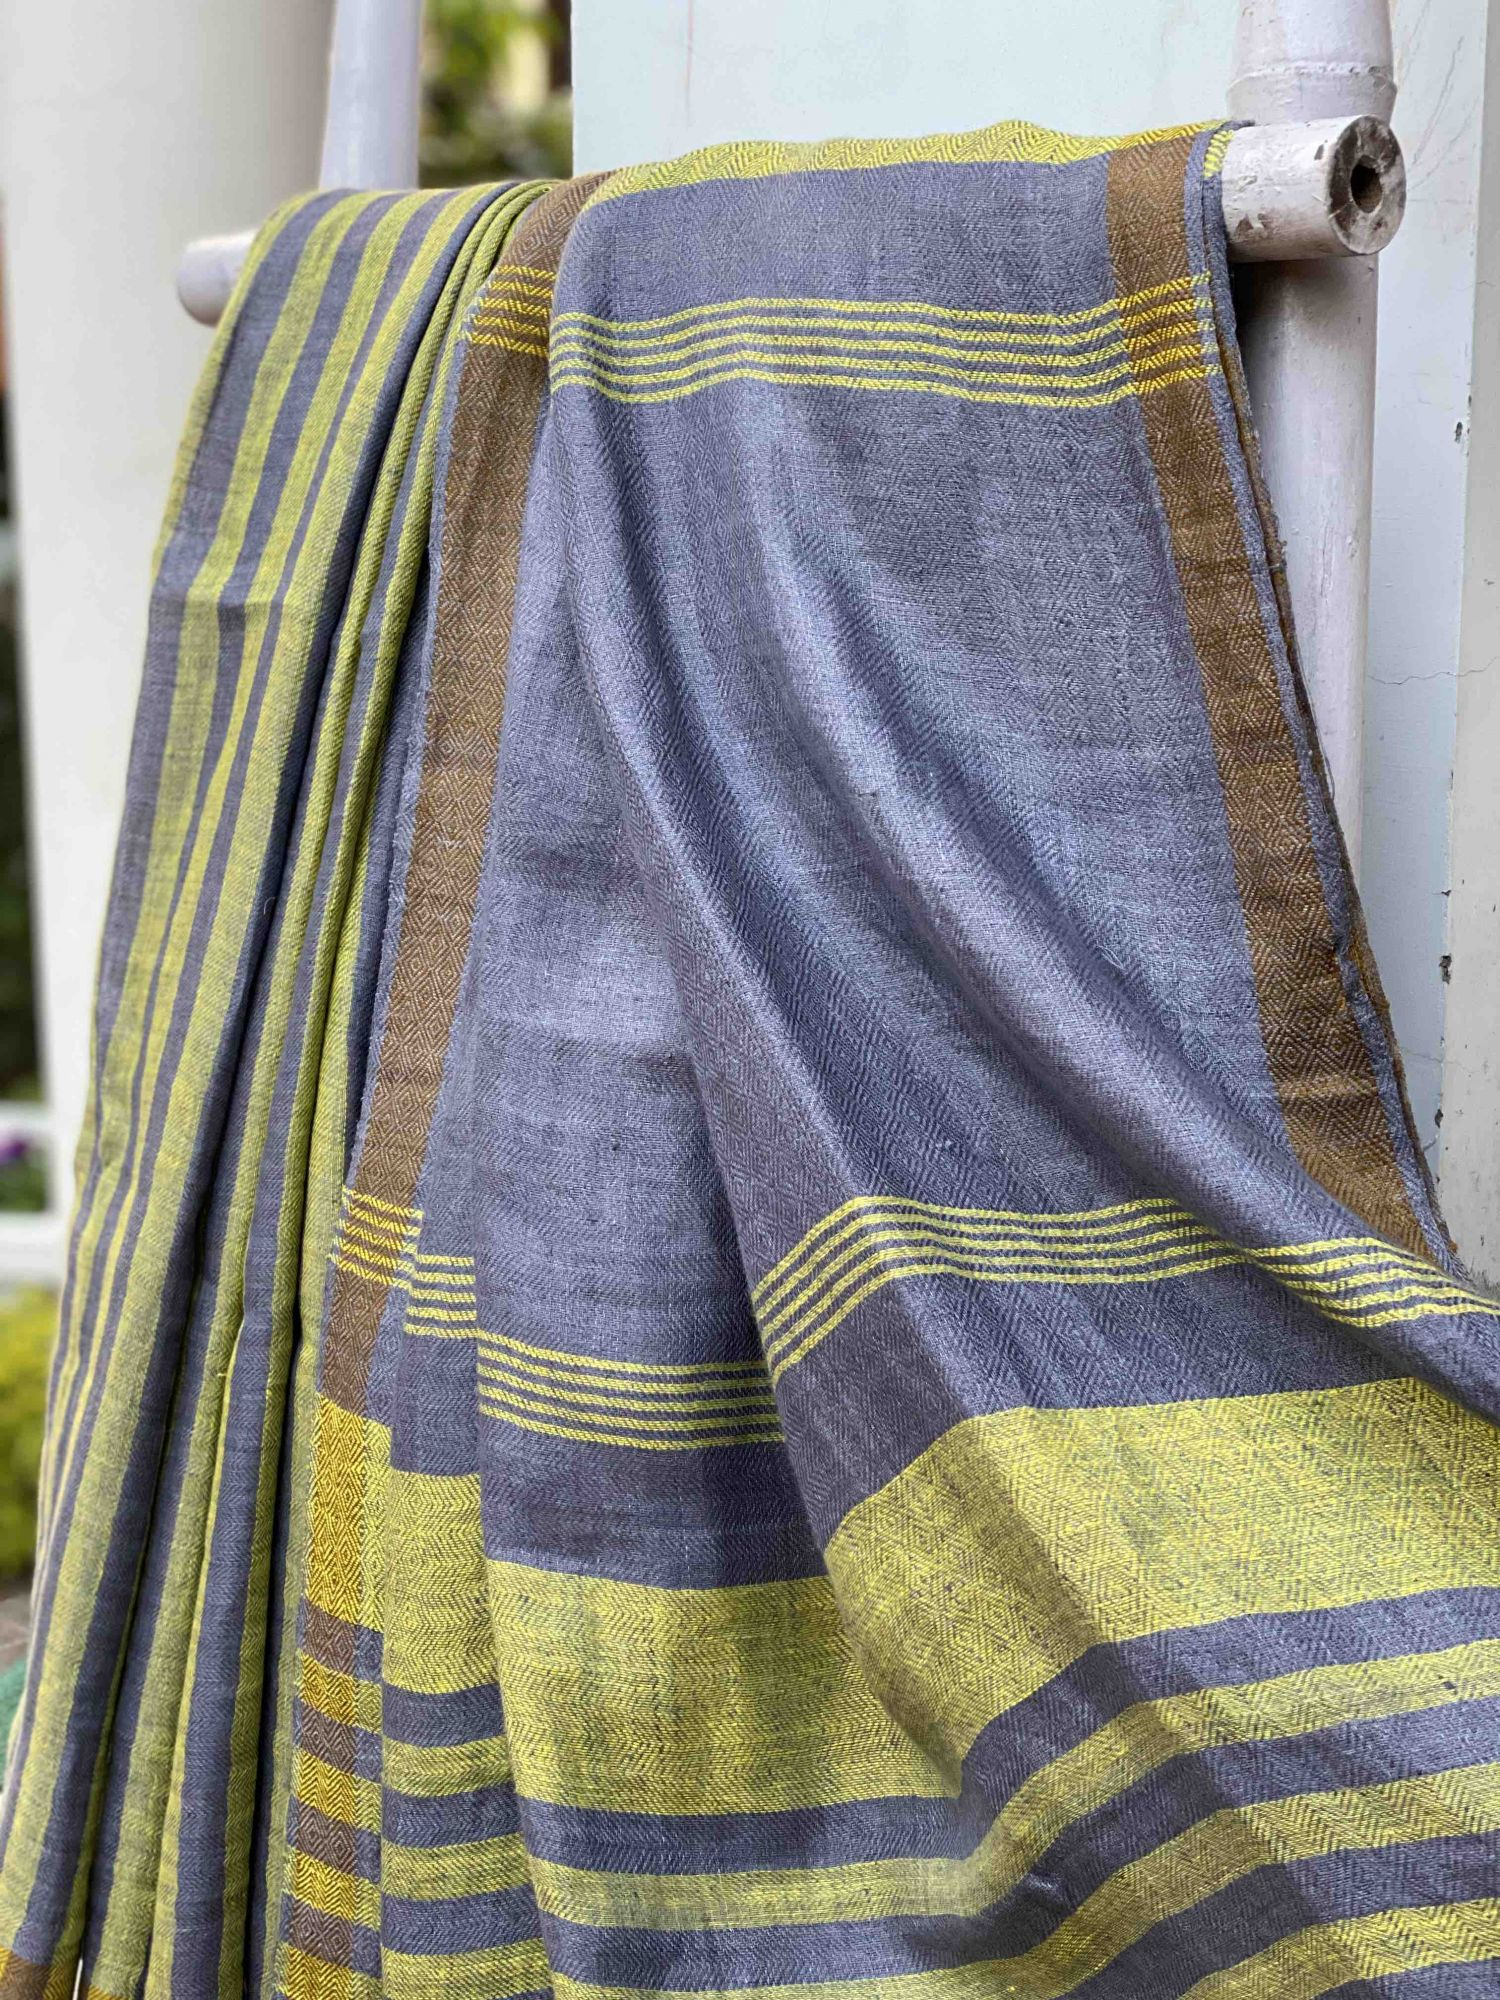 ' SILVER BUSH' GREYISH BLUE & LEMON SHADED HERRINGBONE LINEN HANDWOVEN SARI